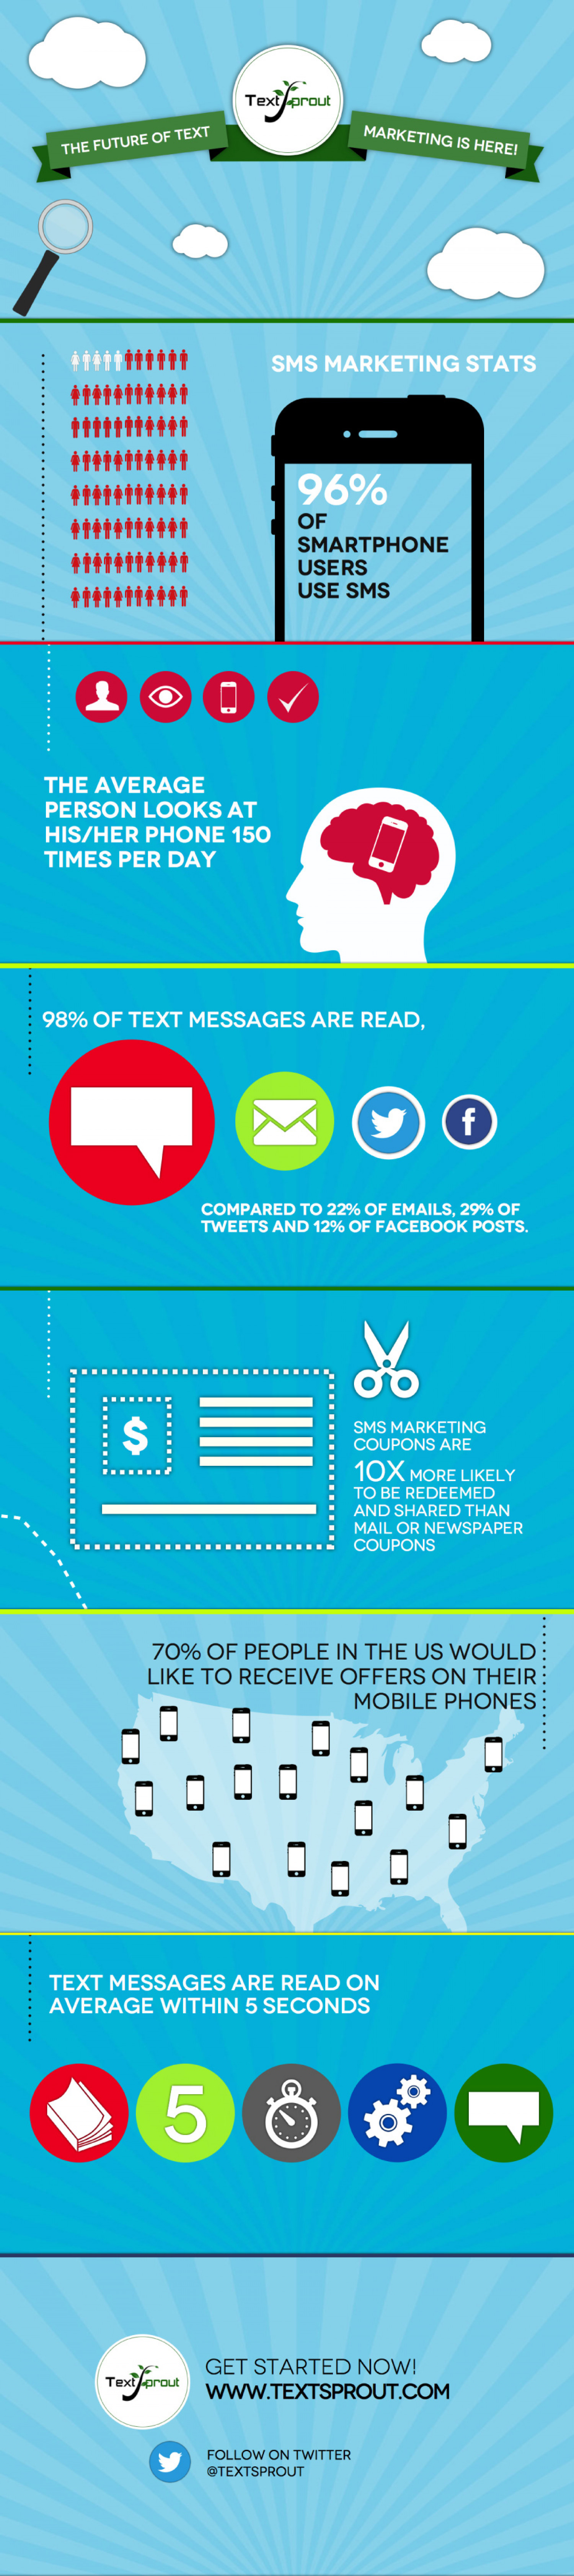 SMS Marketing Stats and Fun Facts Infographic